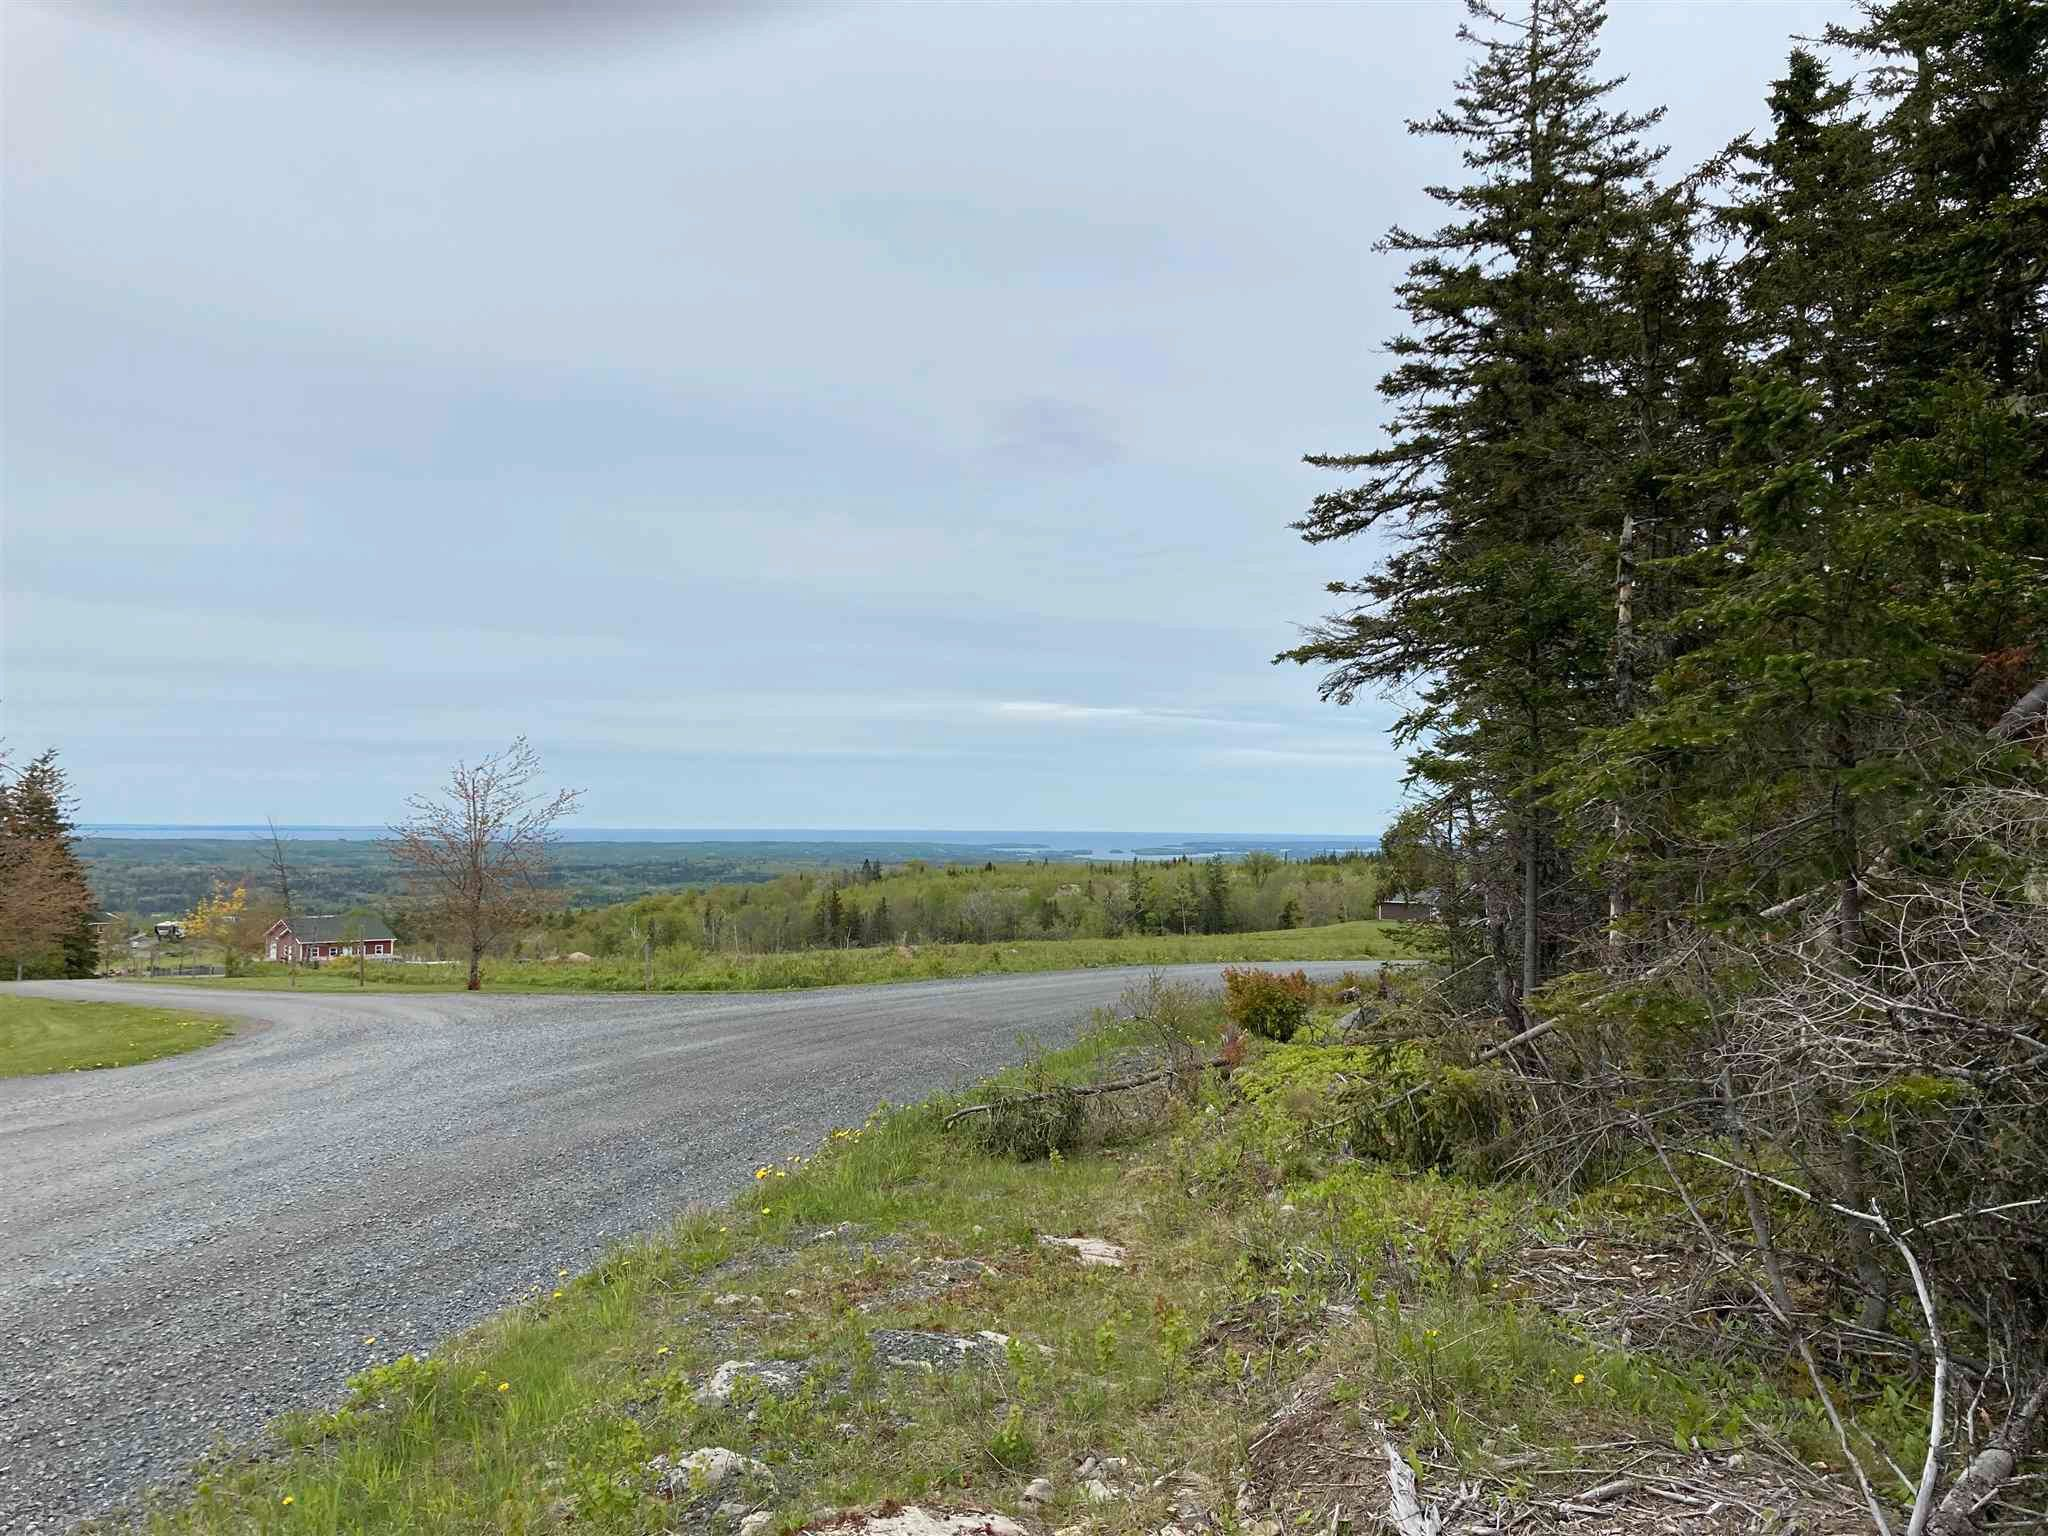 Main Photo: Lot 3 Wilford MacDonald Road in Greenwood: 108-Rural Pictou County Vacant Land for sale (Northern Region)  : MLS®# 202113436